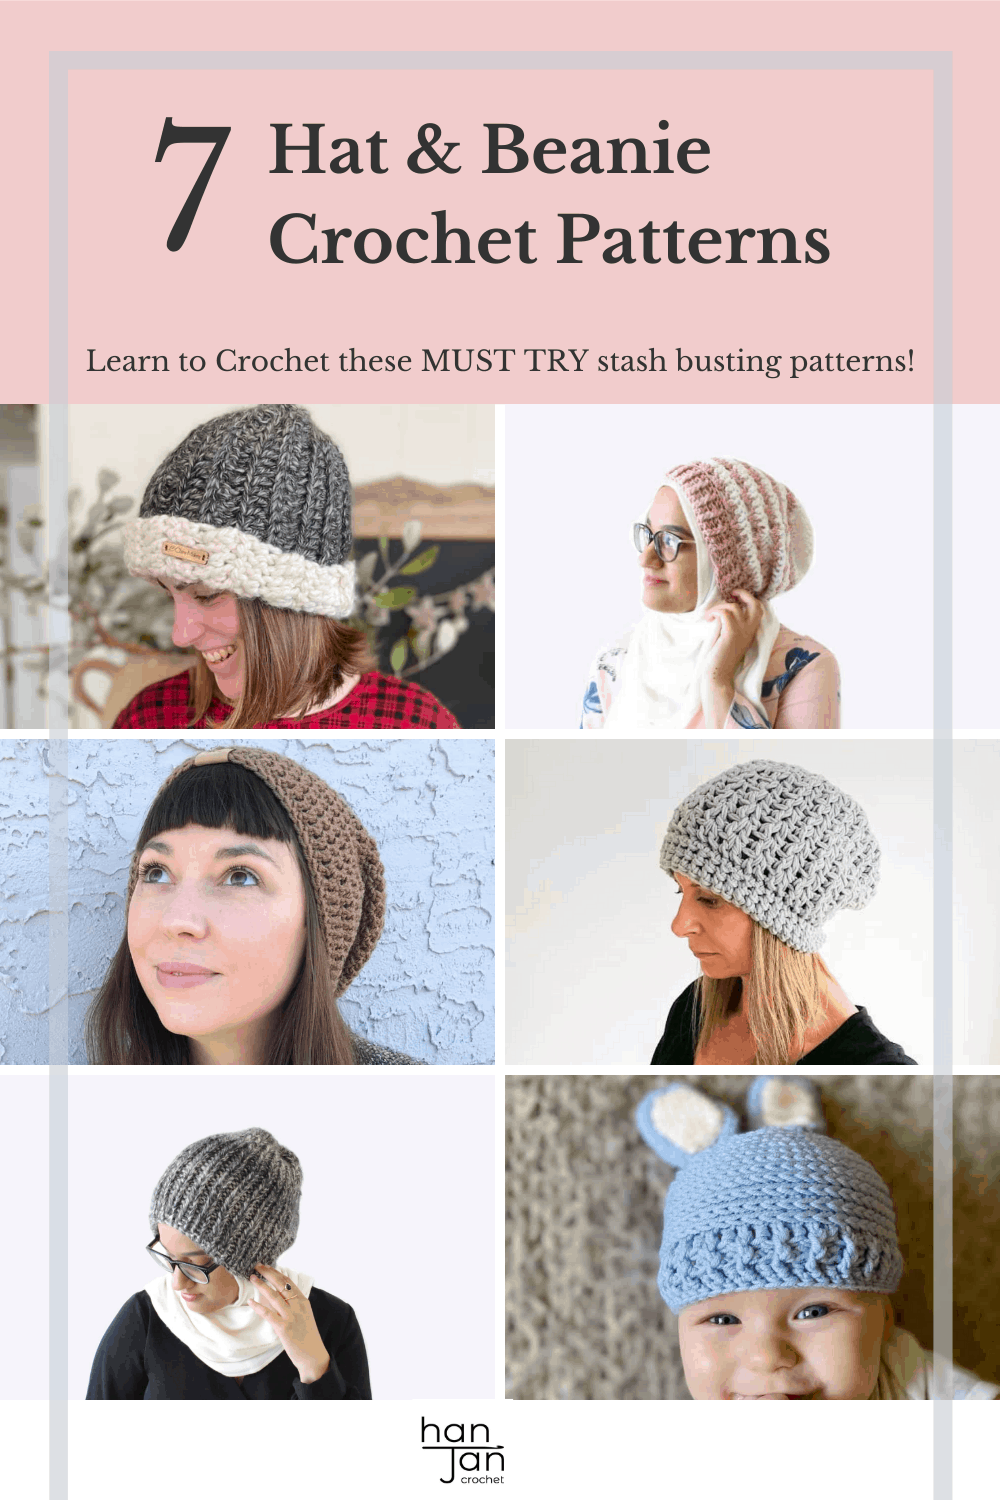 7 Easy Crochet Hat and Beanie Patterns for all the family